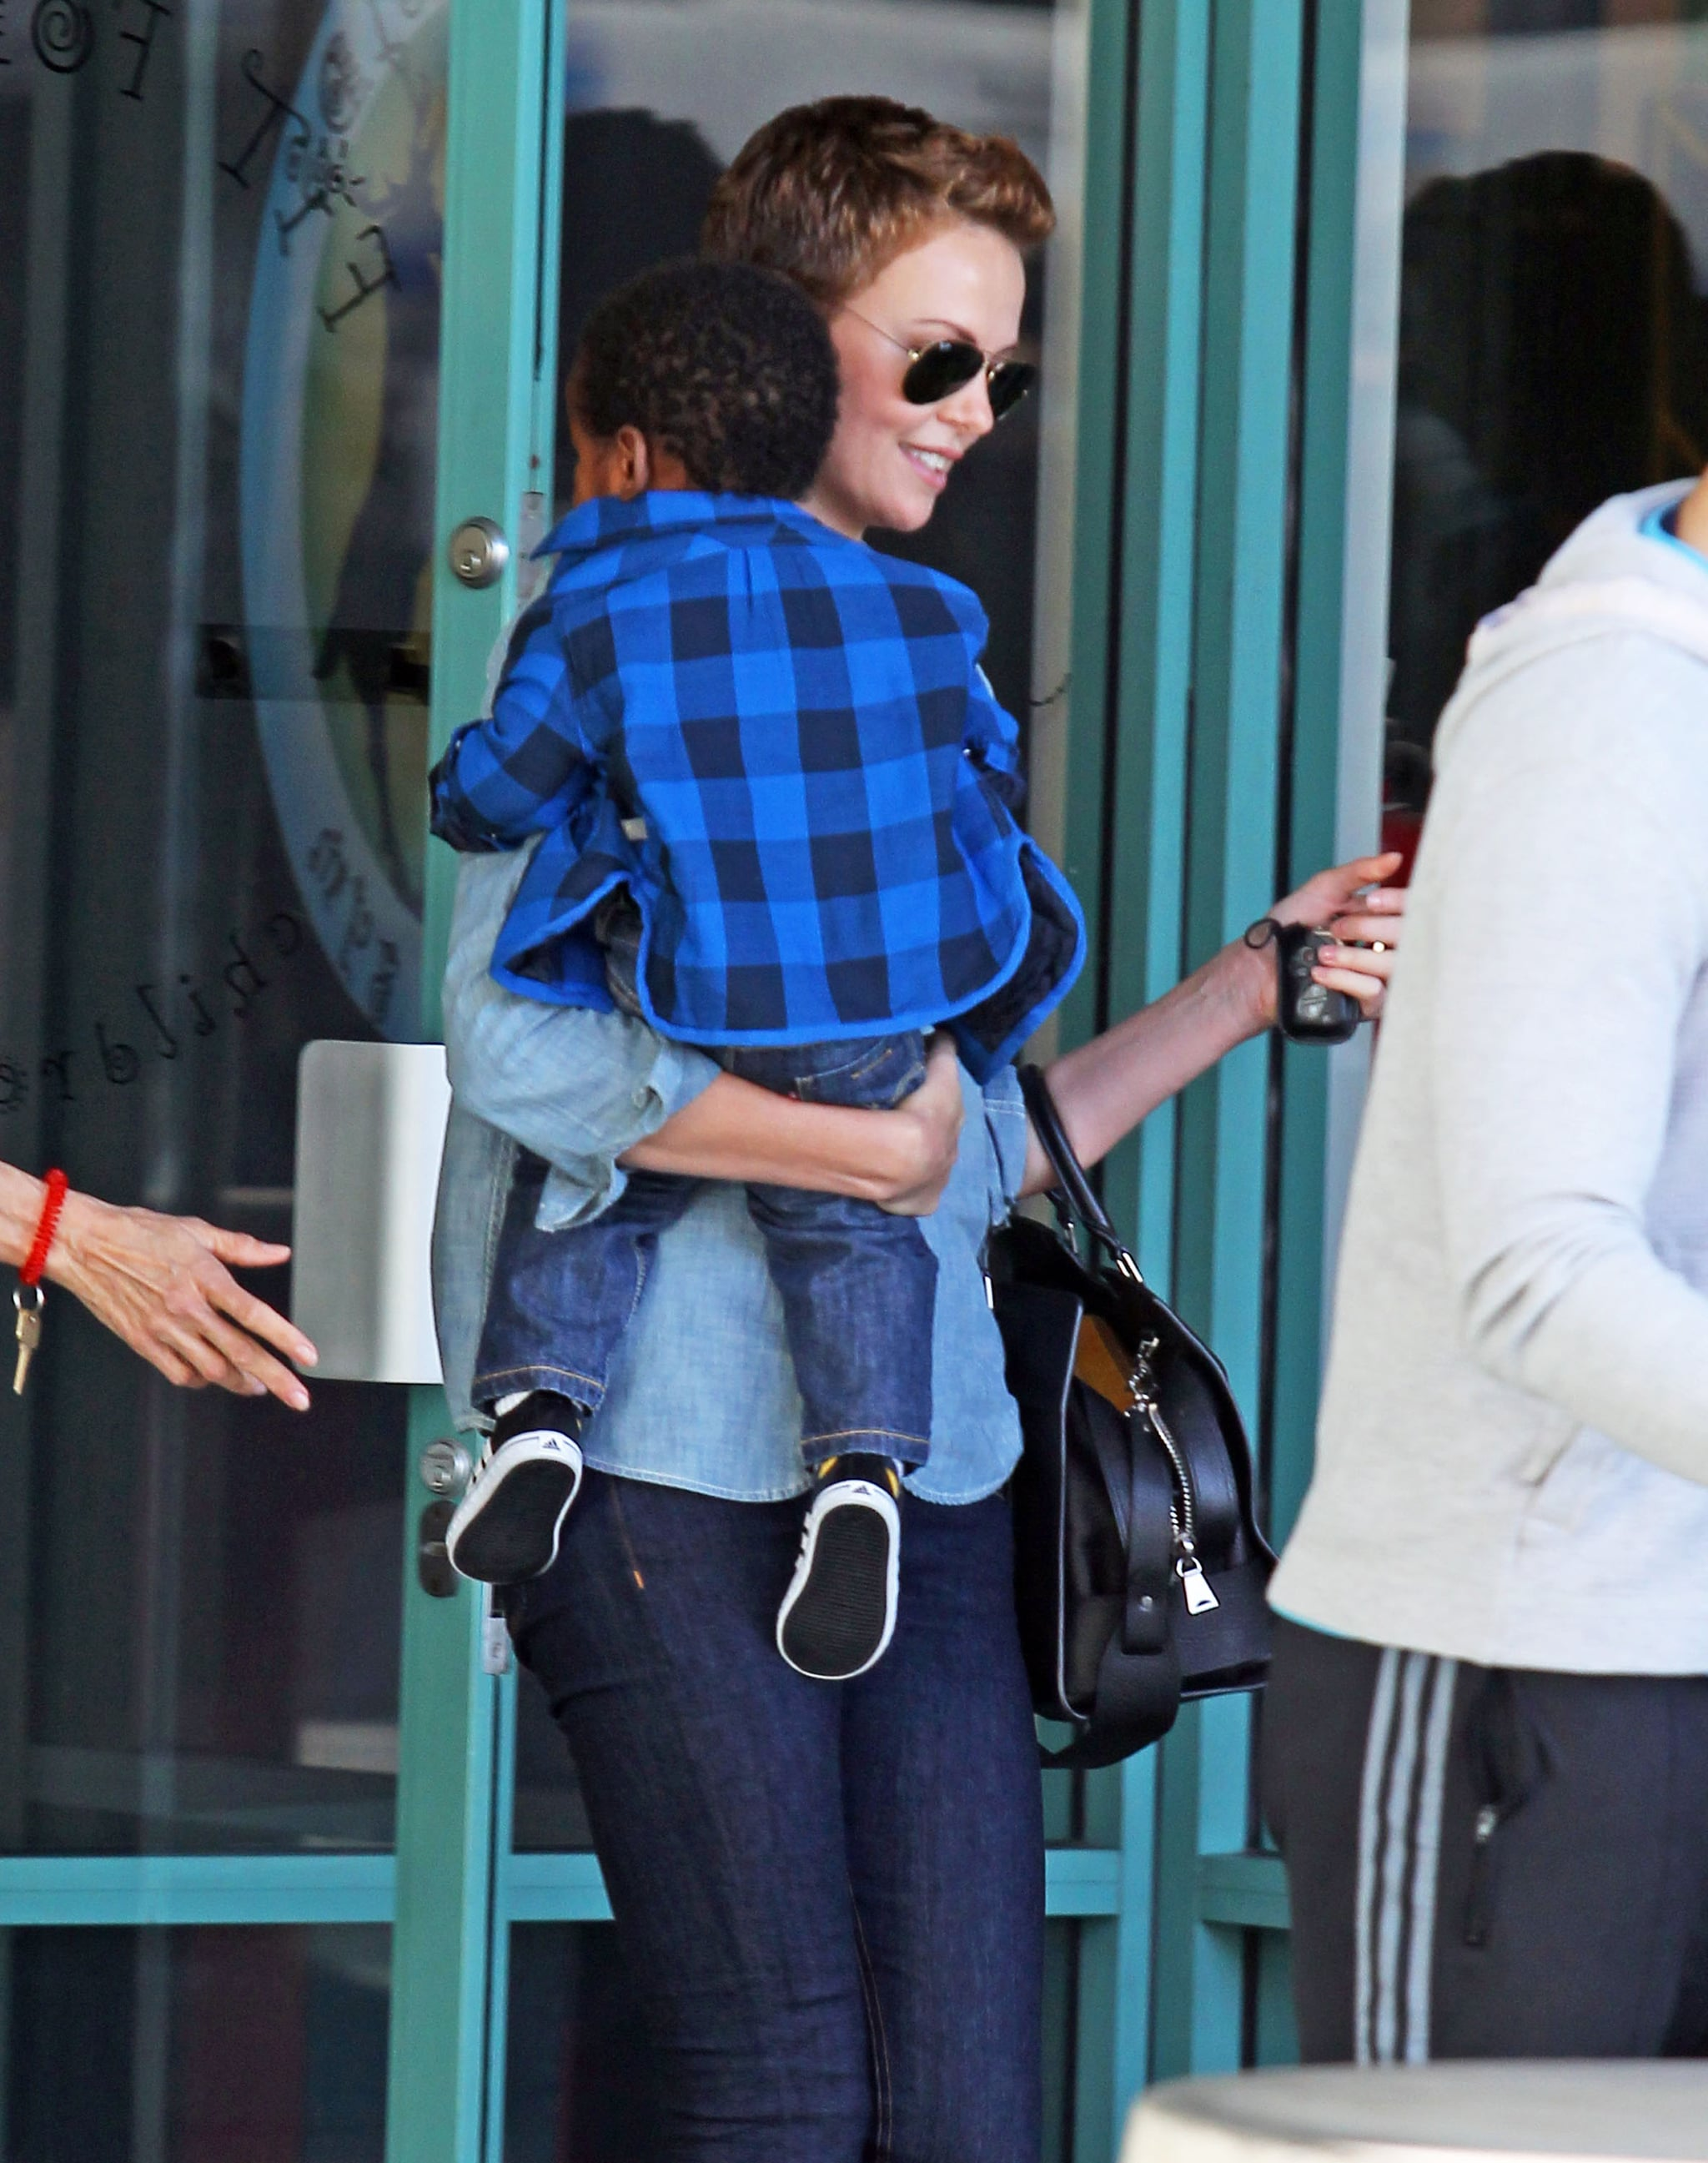 Charlize Theron smiled on her way out of the gym with son Jackson in her arms.